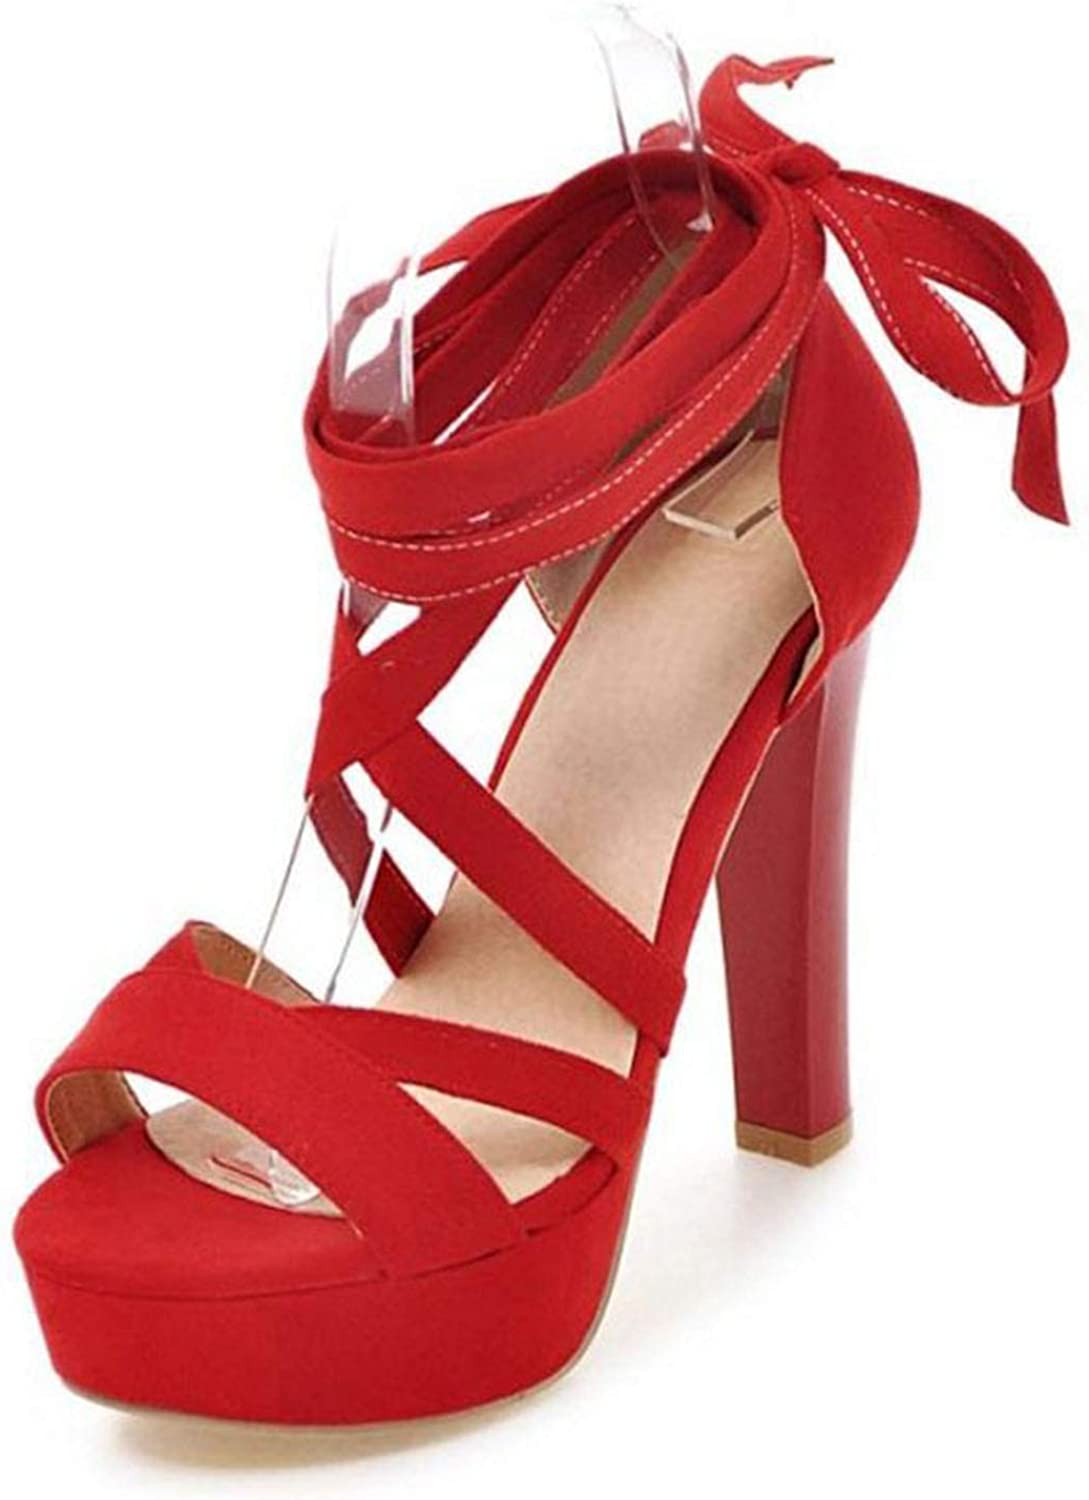 Fairly New Supper High Heels Platform Cross Tied Strappy shoes Sexy Party Gladiator,Red,3